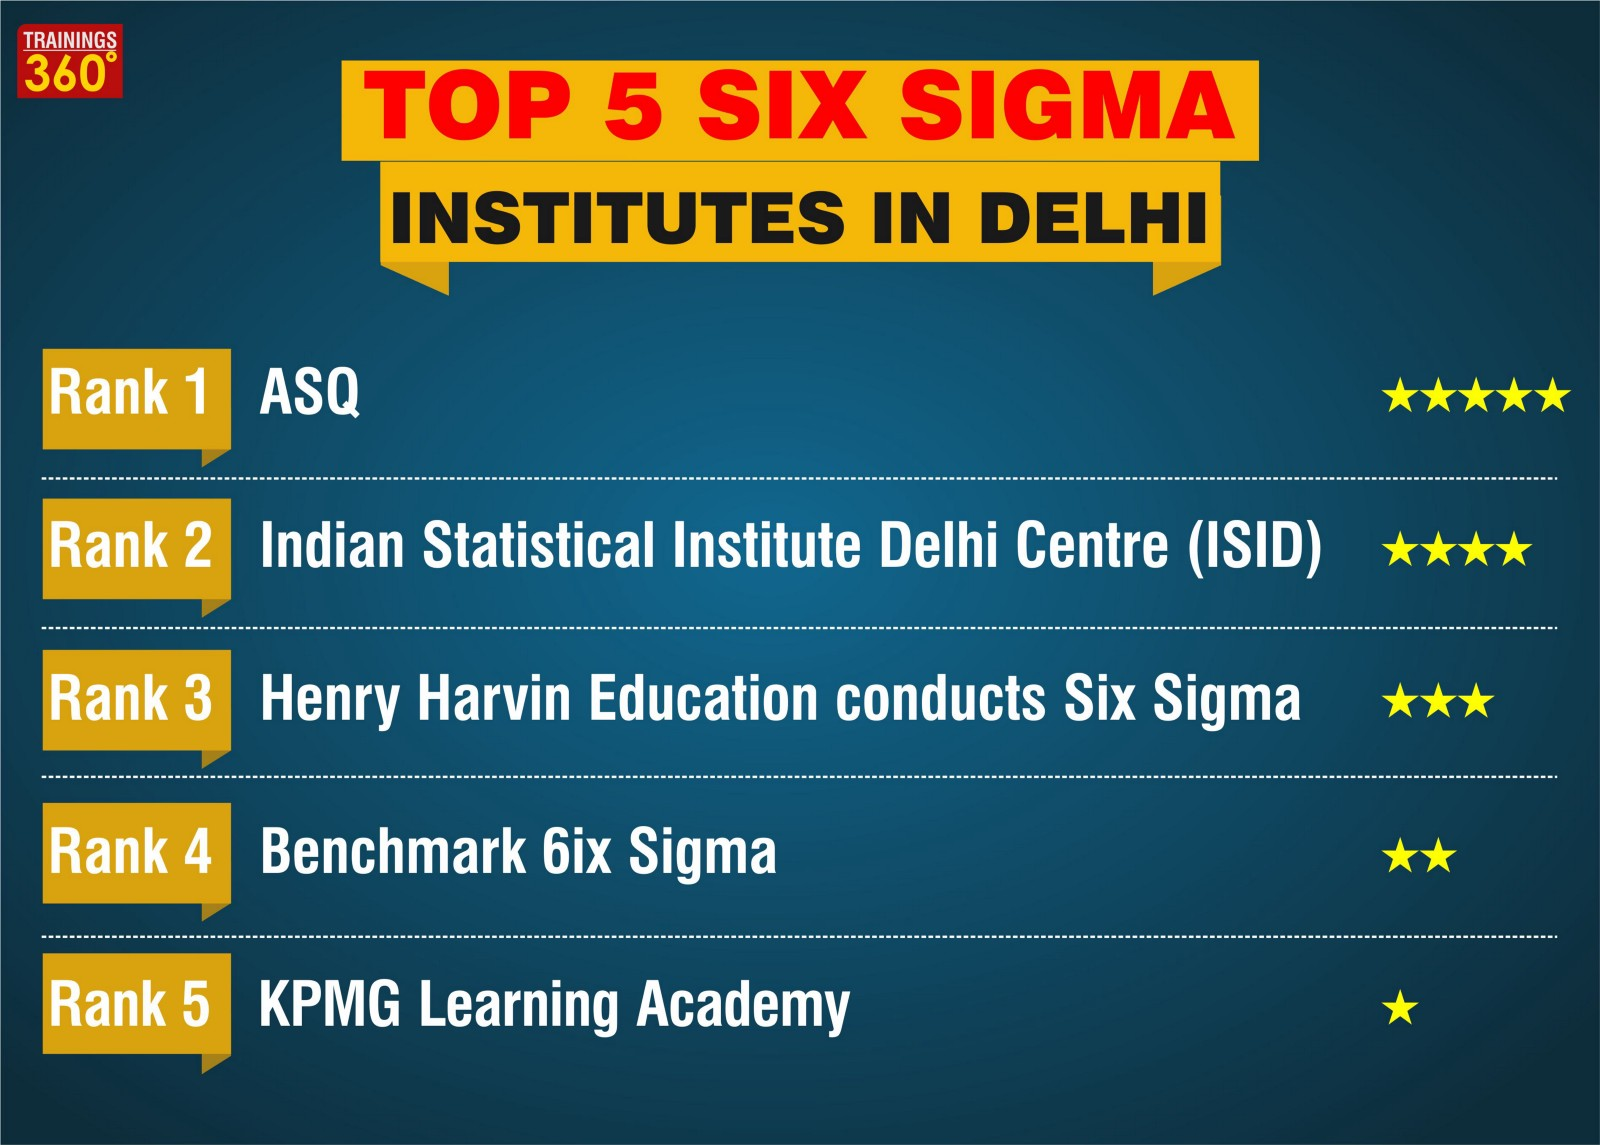 Top 5 six sigma institutes in delhi trainings360 medium top 5 six sigma institutes in delhi 1betcityfo Image collections